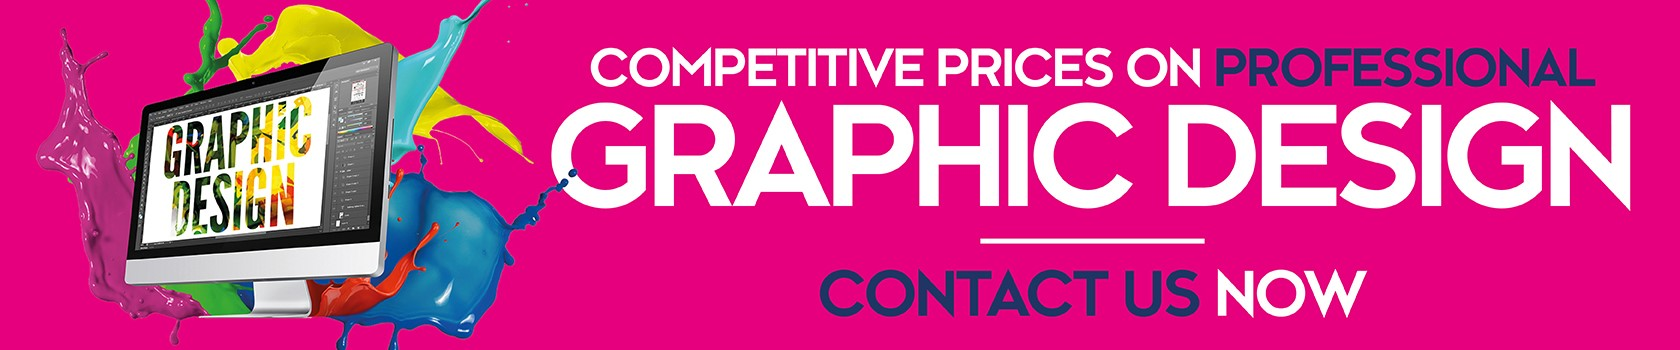 Graphic design for adverts, print and signage